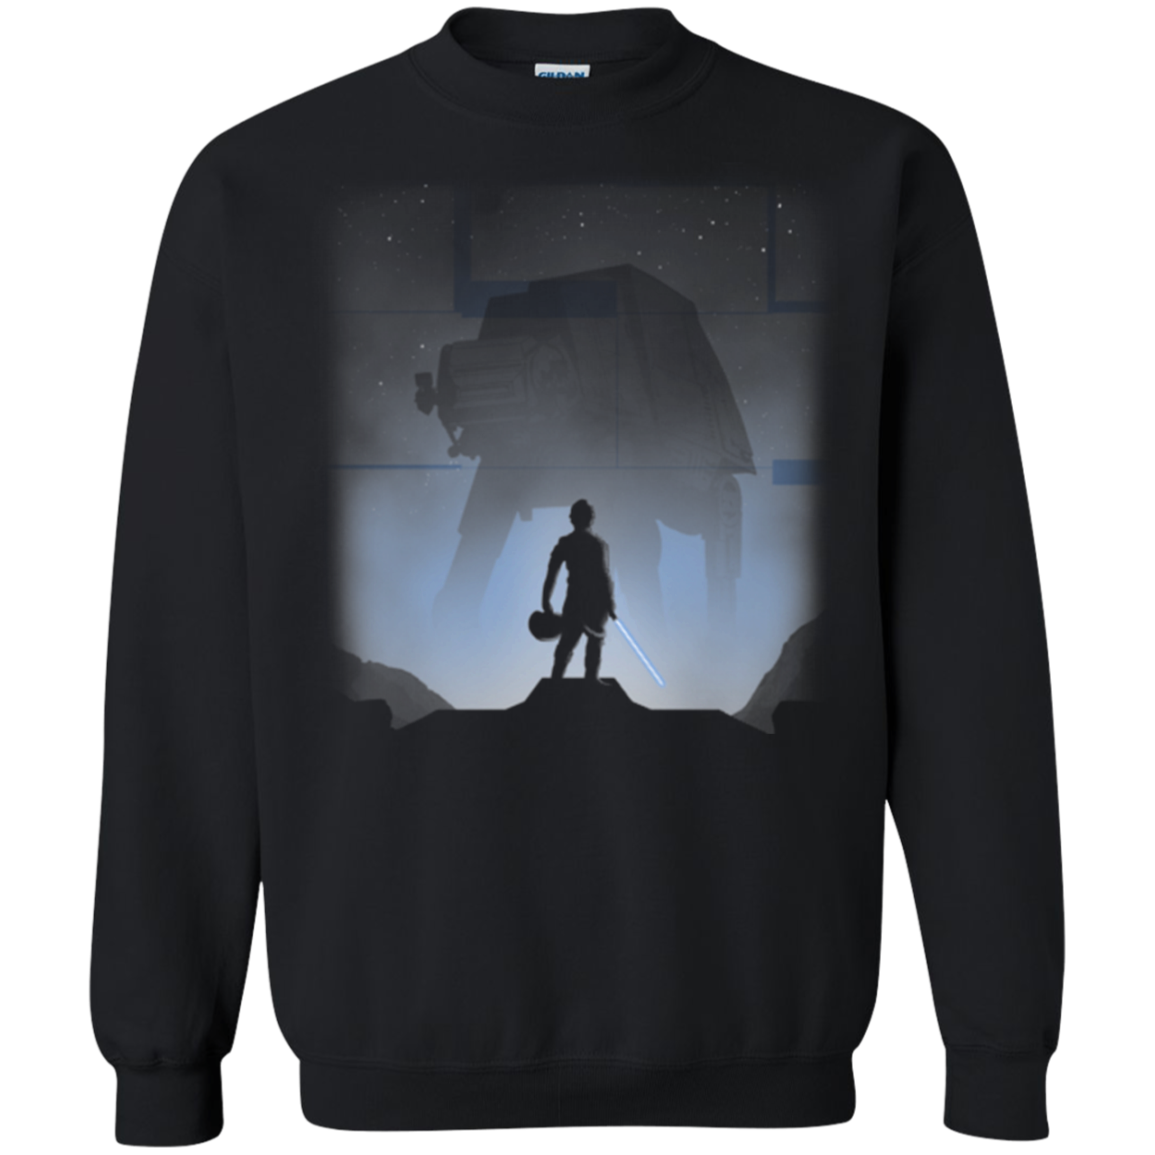 Rebel vs Empire Crewneck Sweatshirt